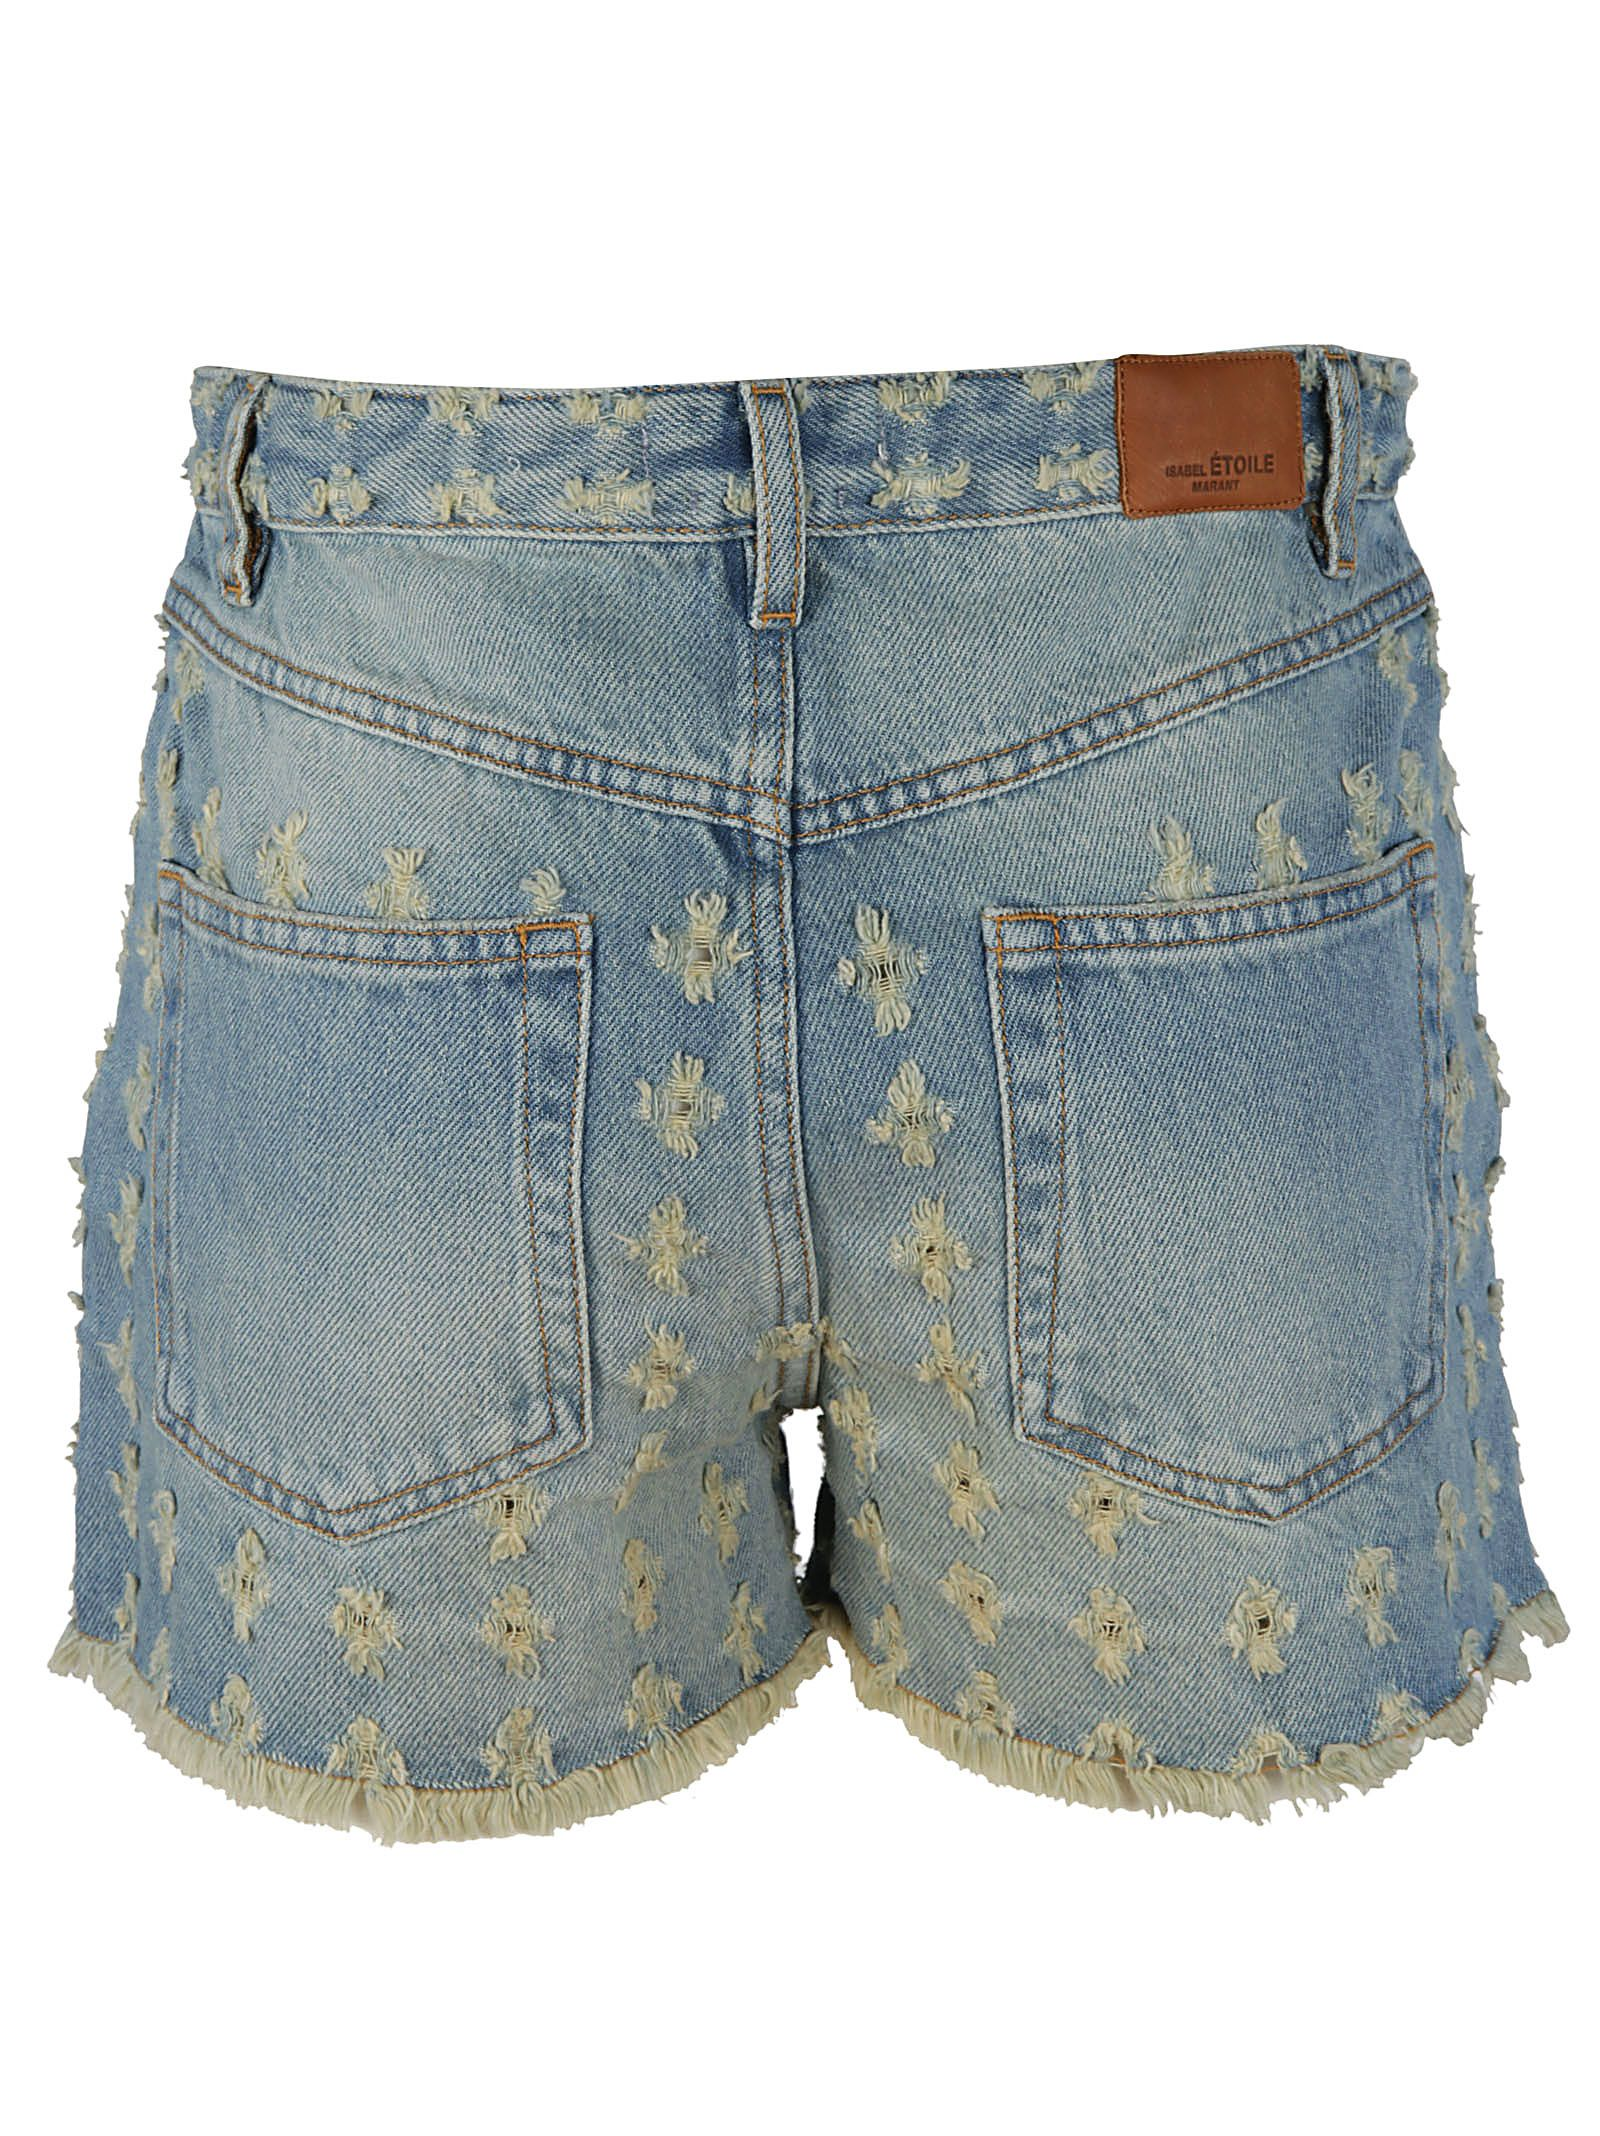 Isabel marant floral embroidered denim